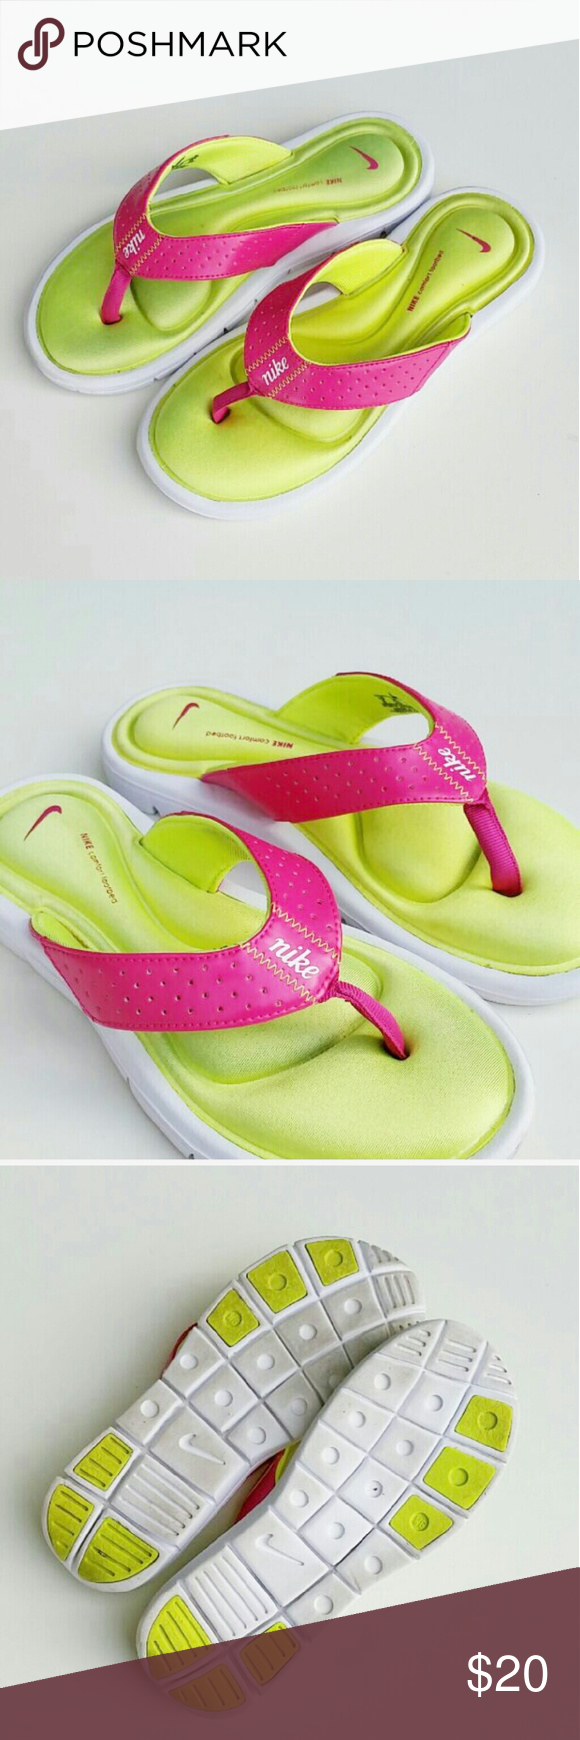 285244682808 Women s Nike Gel cushion sandals Women s Nike Gel cushion sandals   flip  flops. Been worn only a few times.. very little dirty on the bottom other  then that ...